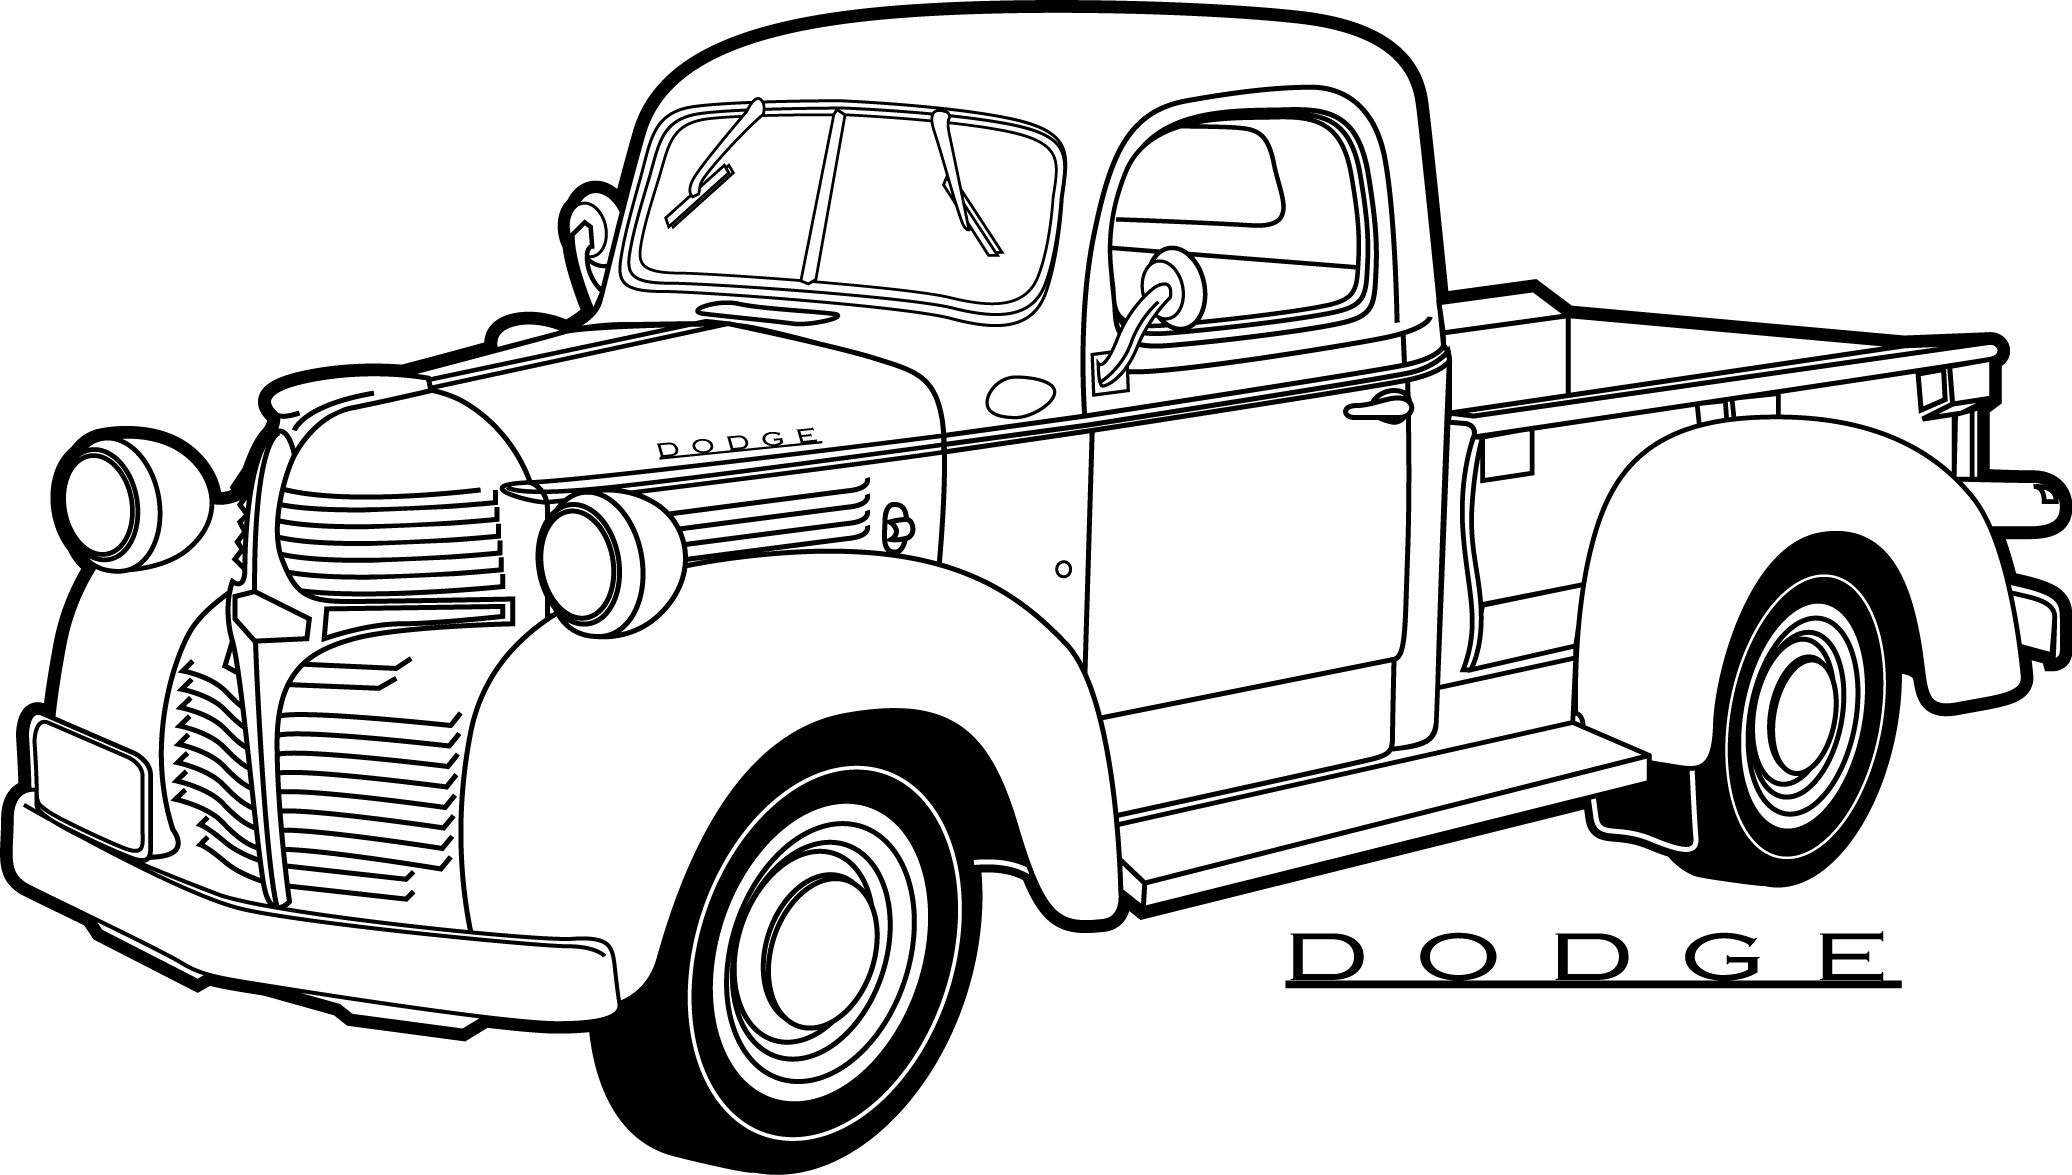 Old Car Drawing at GetDrawings.com | Free for personal use Old Car ...